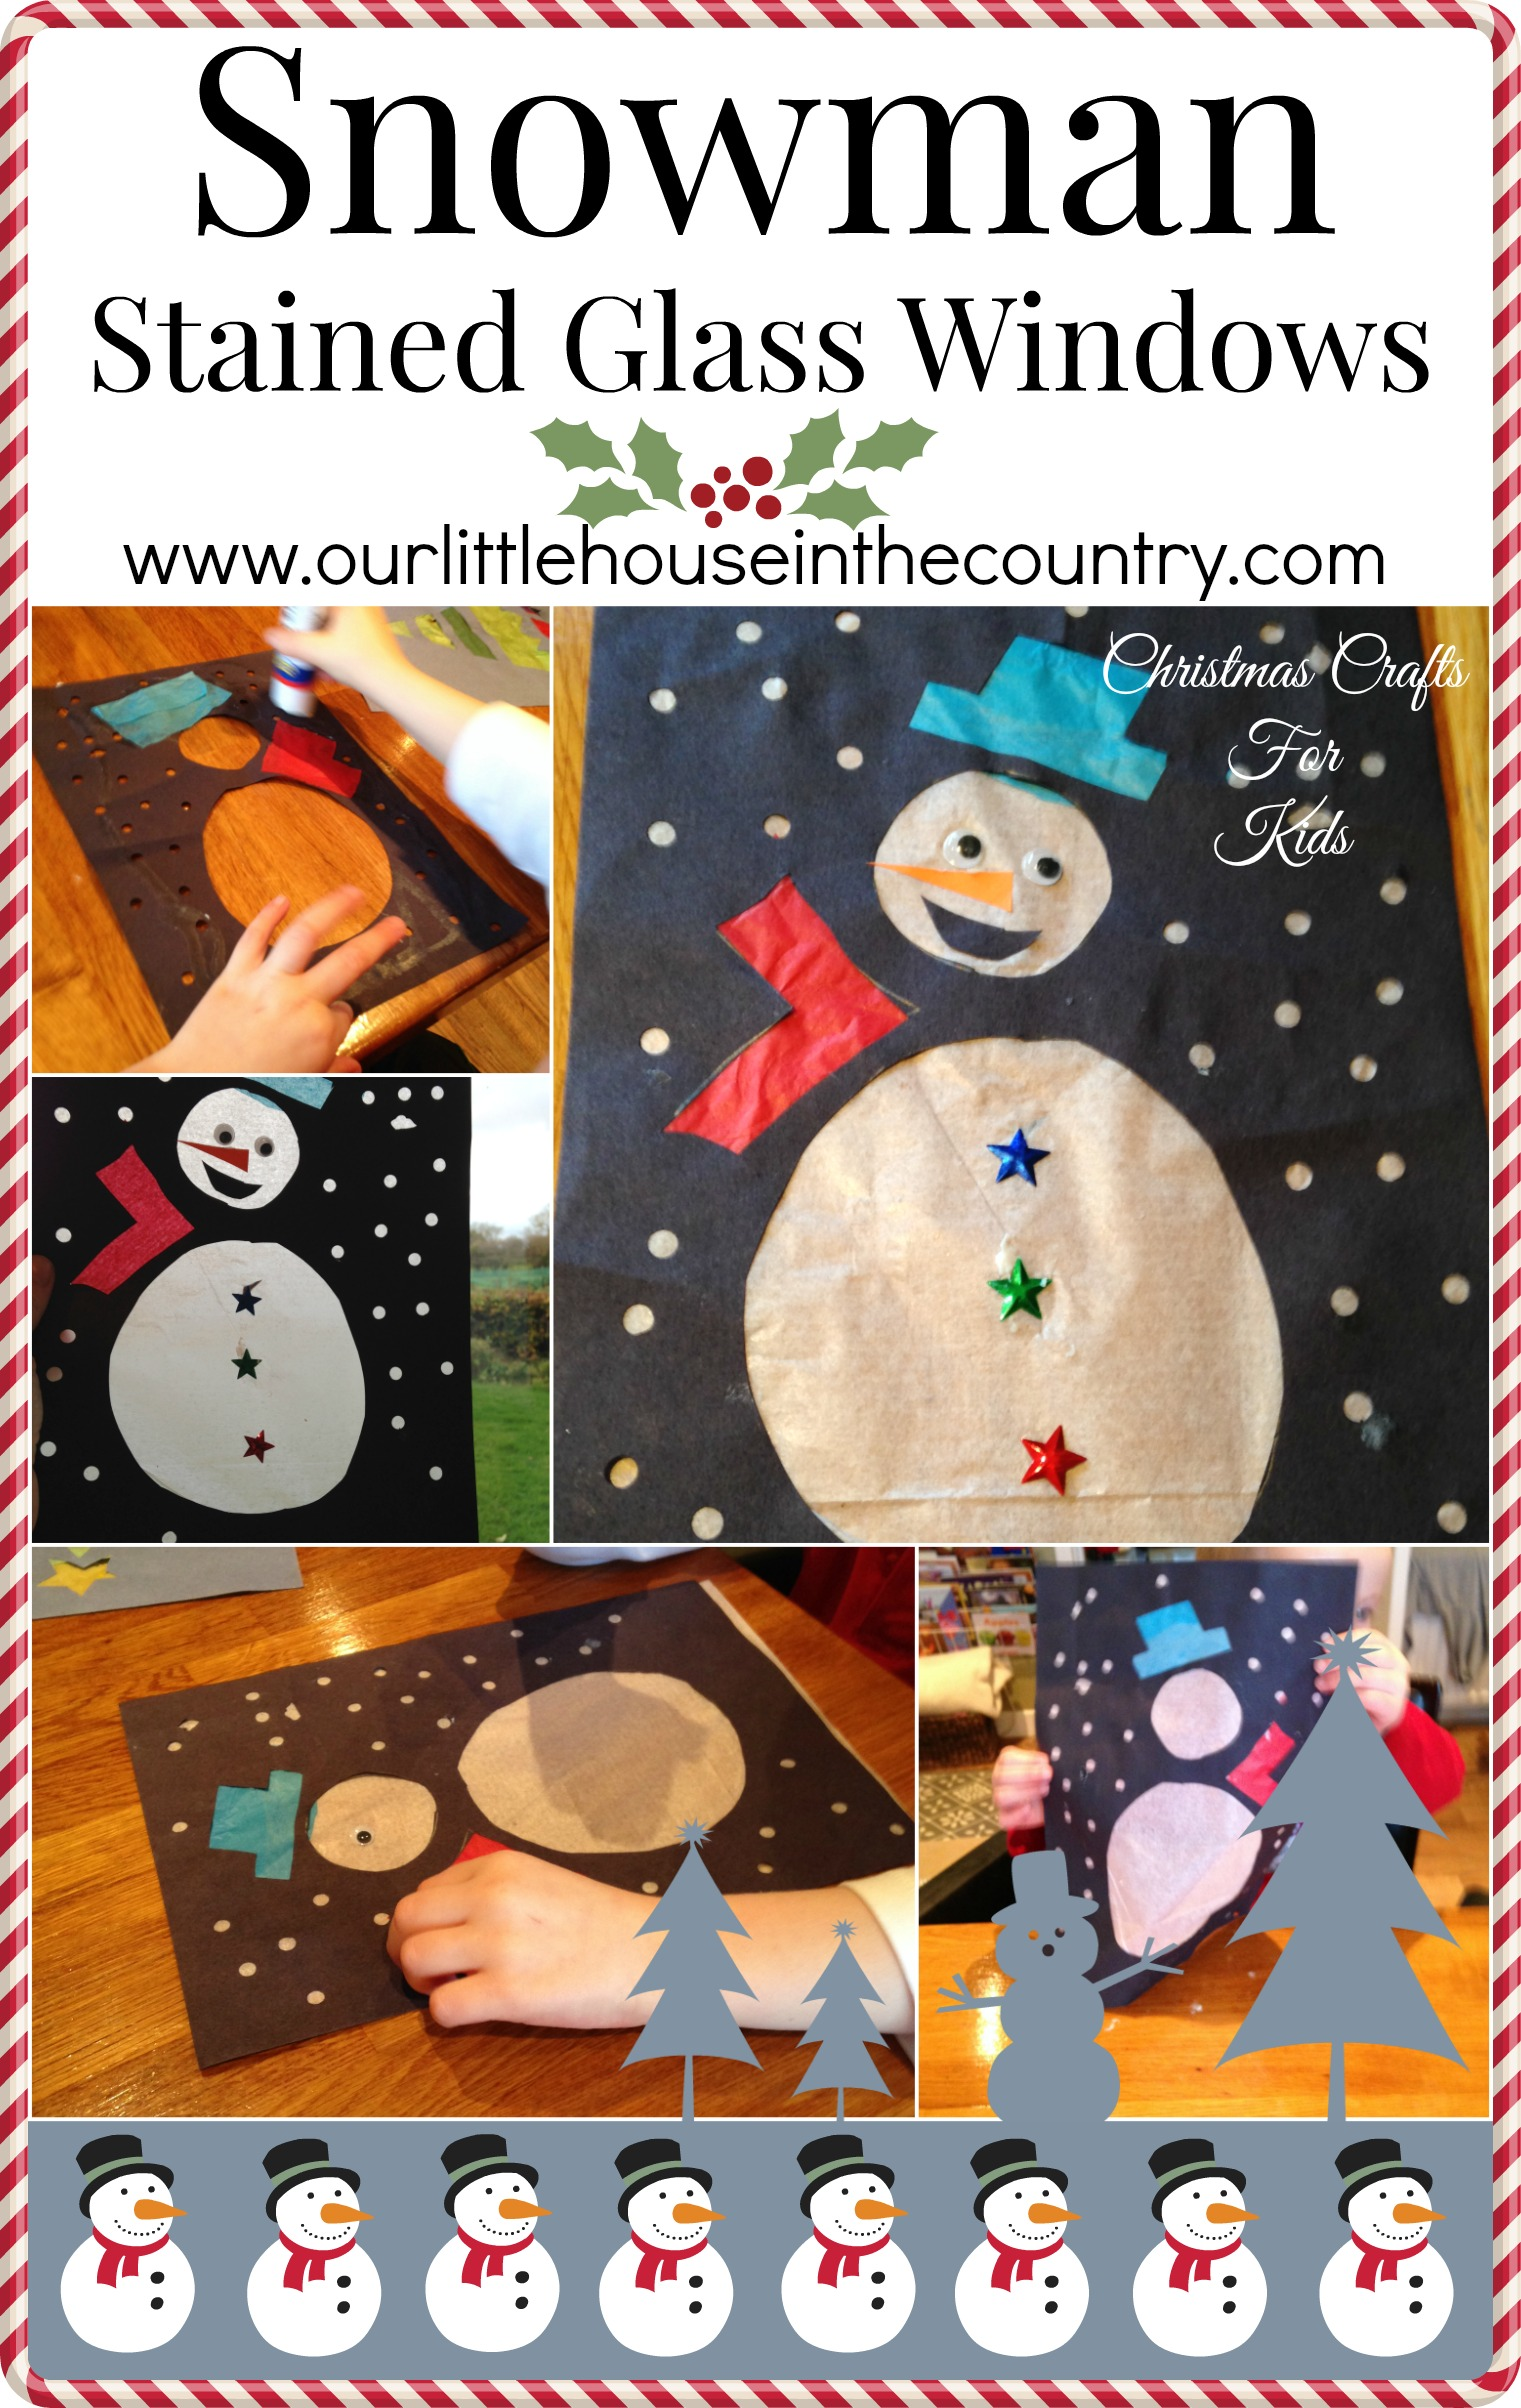 Christmas Crafts Snowman Stained Glass Windows Our Little House In The Country